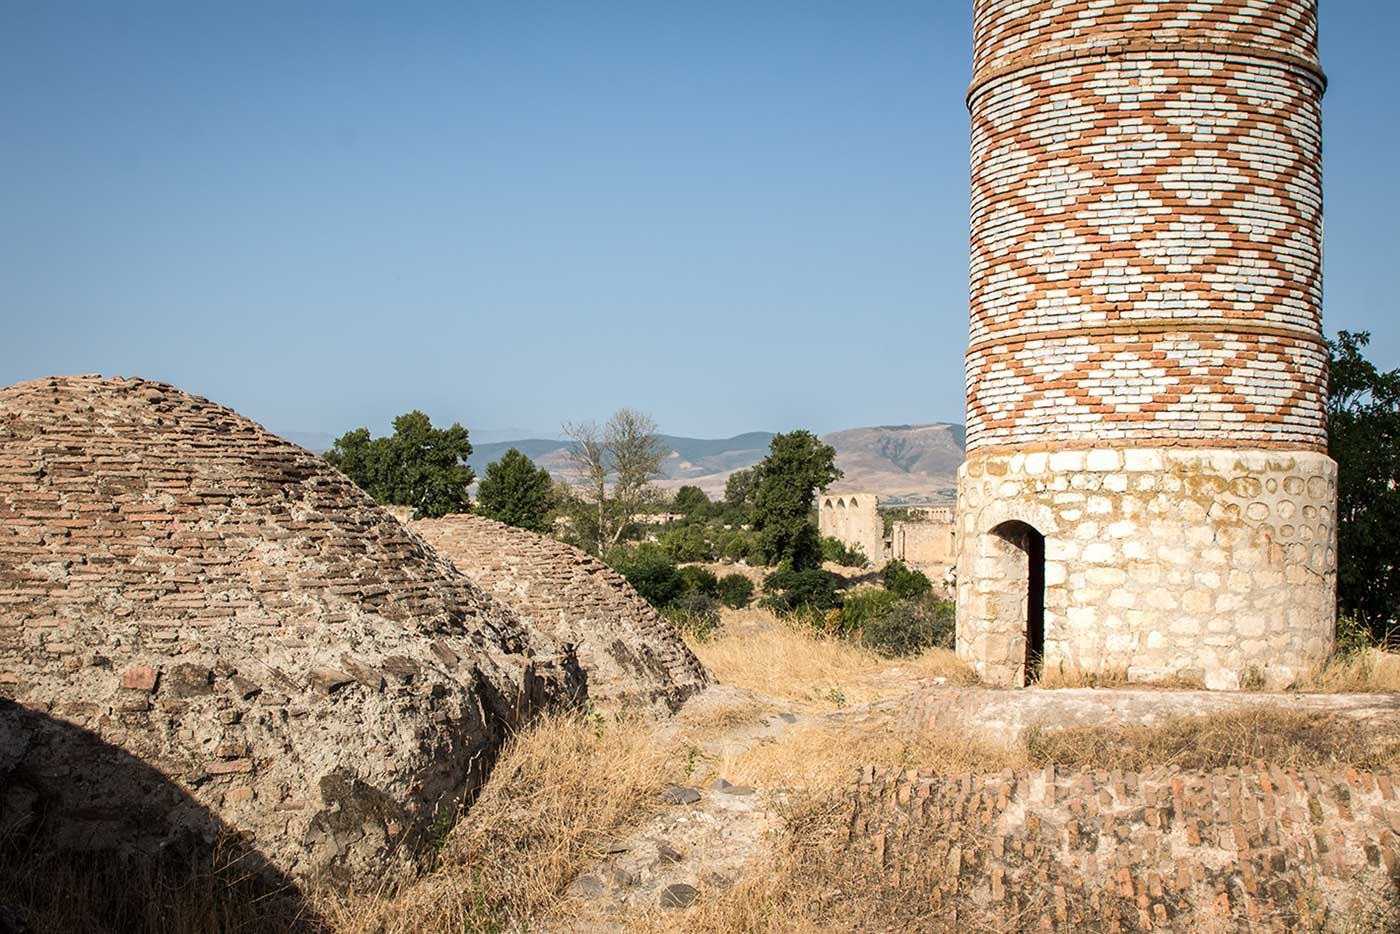 On the mosque's domed roof, an entrance to one of the minarets. Agdam, Nagorno-Karabakh.